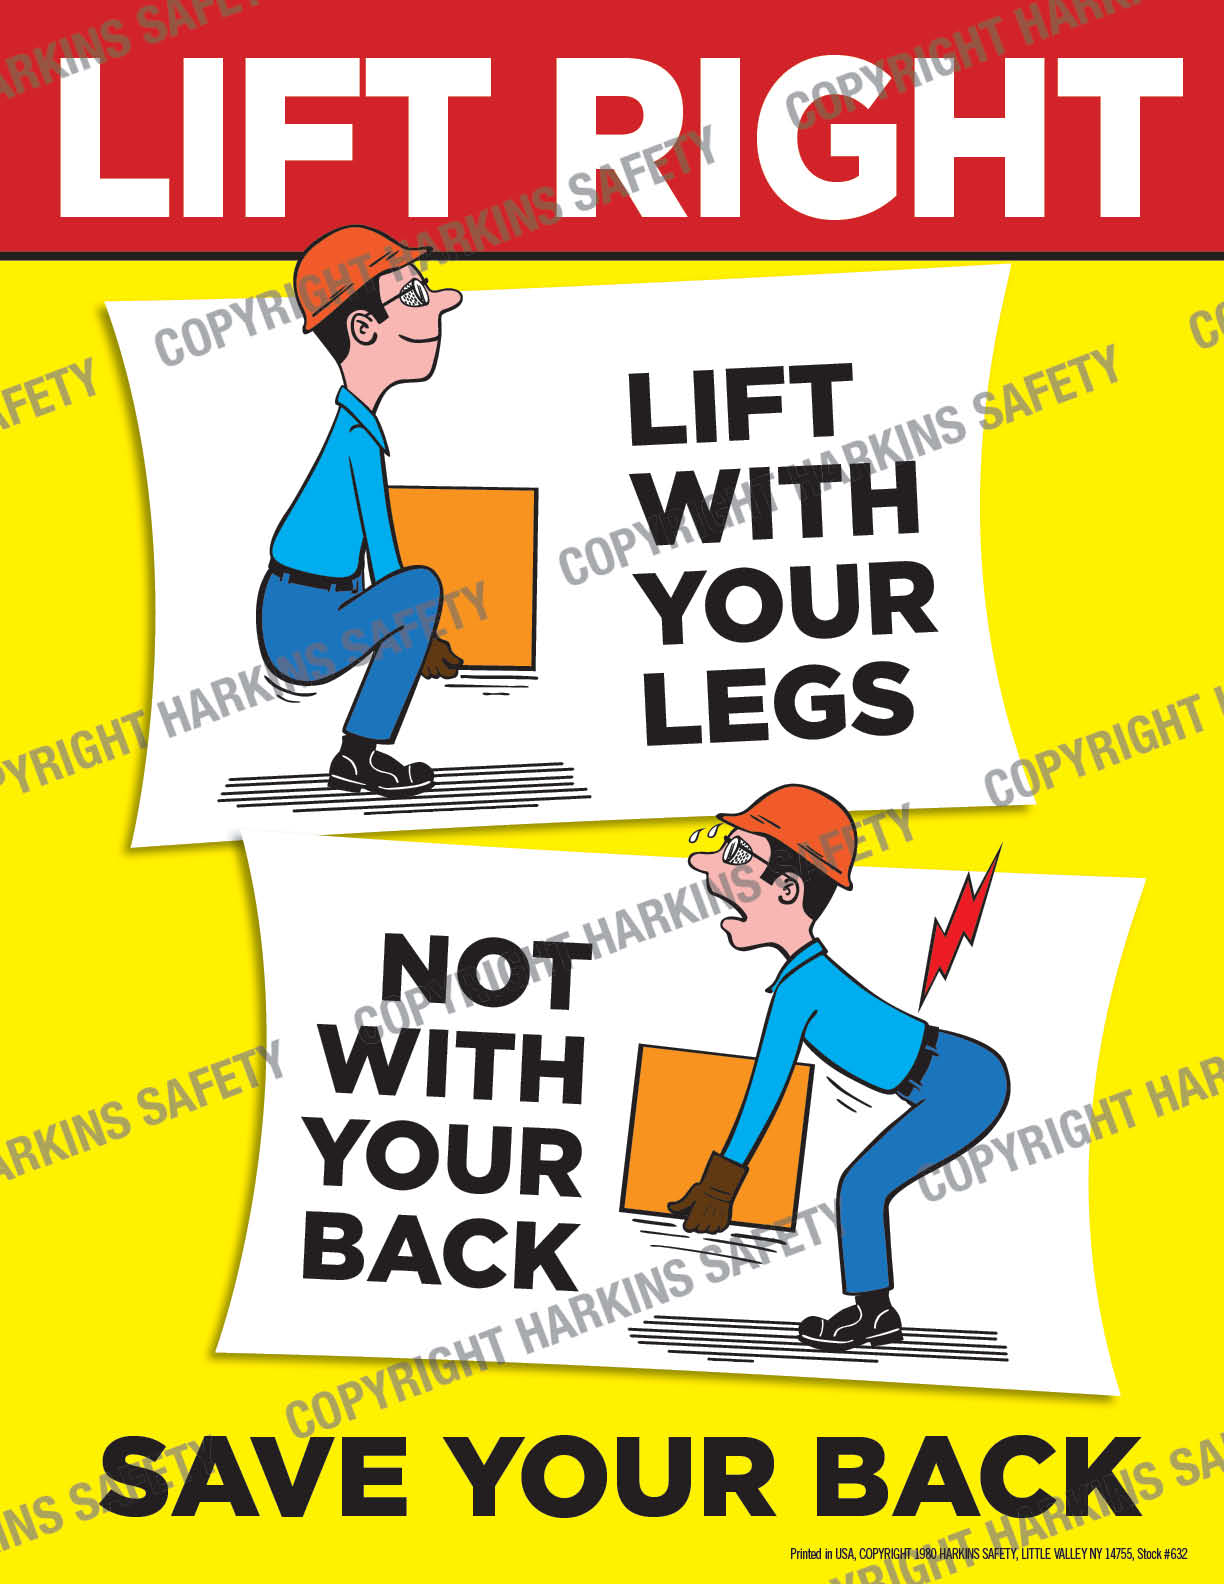 Lift Right ! Save Your Back (Poster)